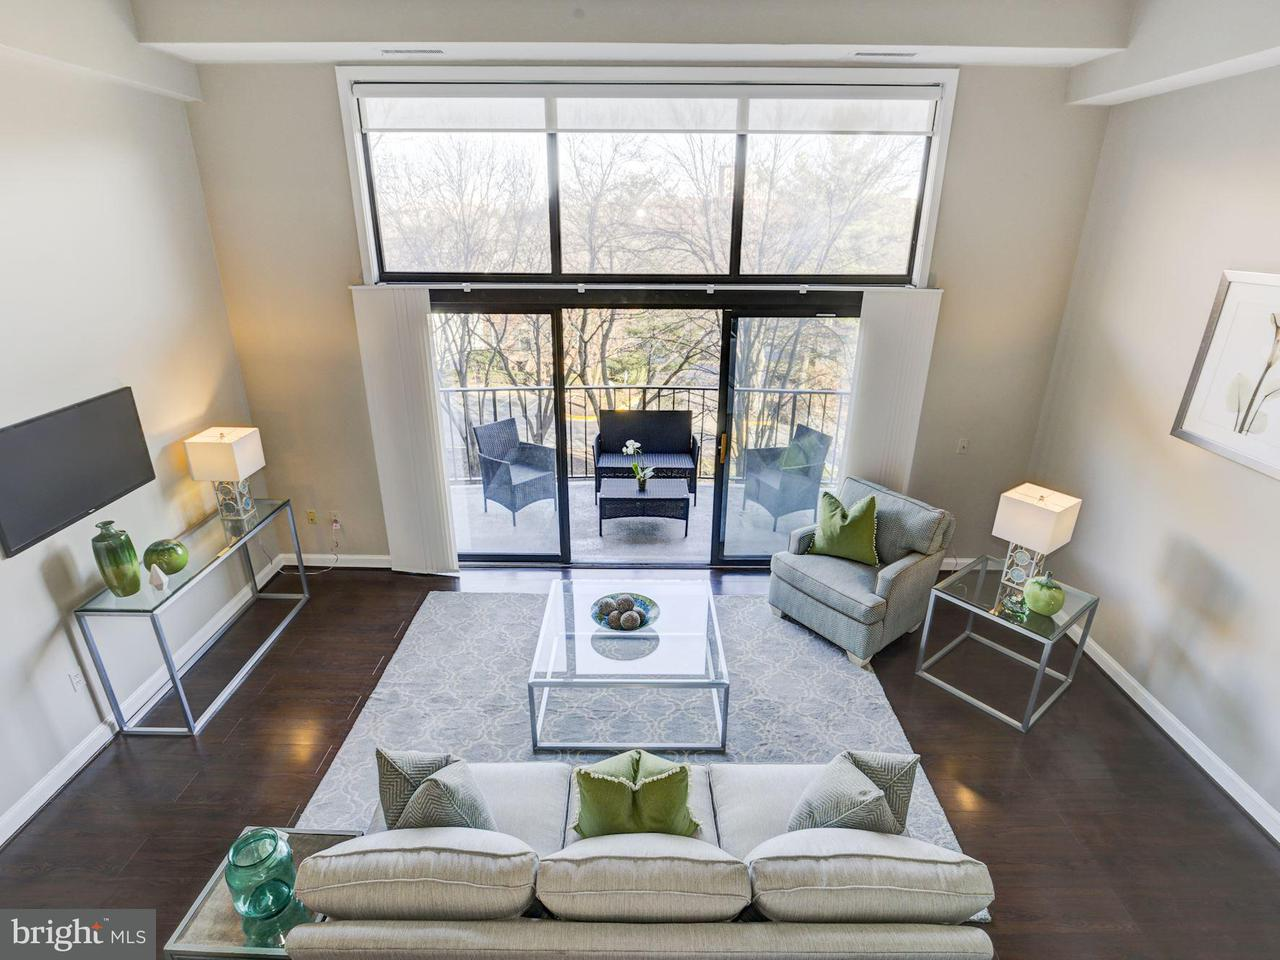 Condominium for Sale at 3101 New Mexico Ave NW #543 Washington, District Of Columbia 20016 United States